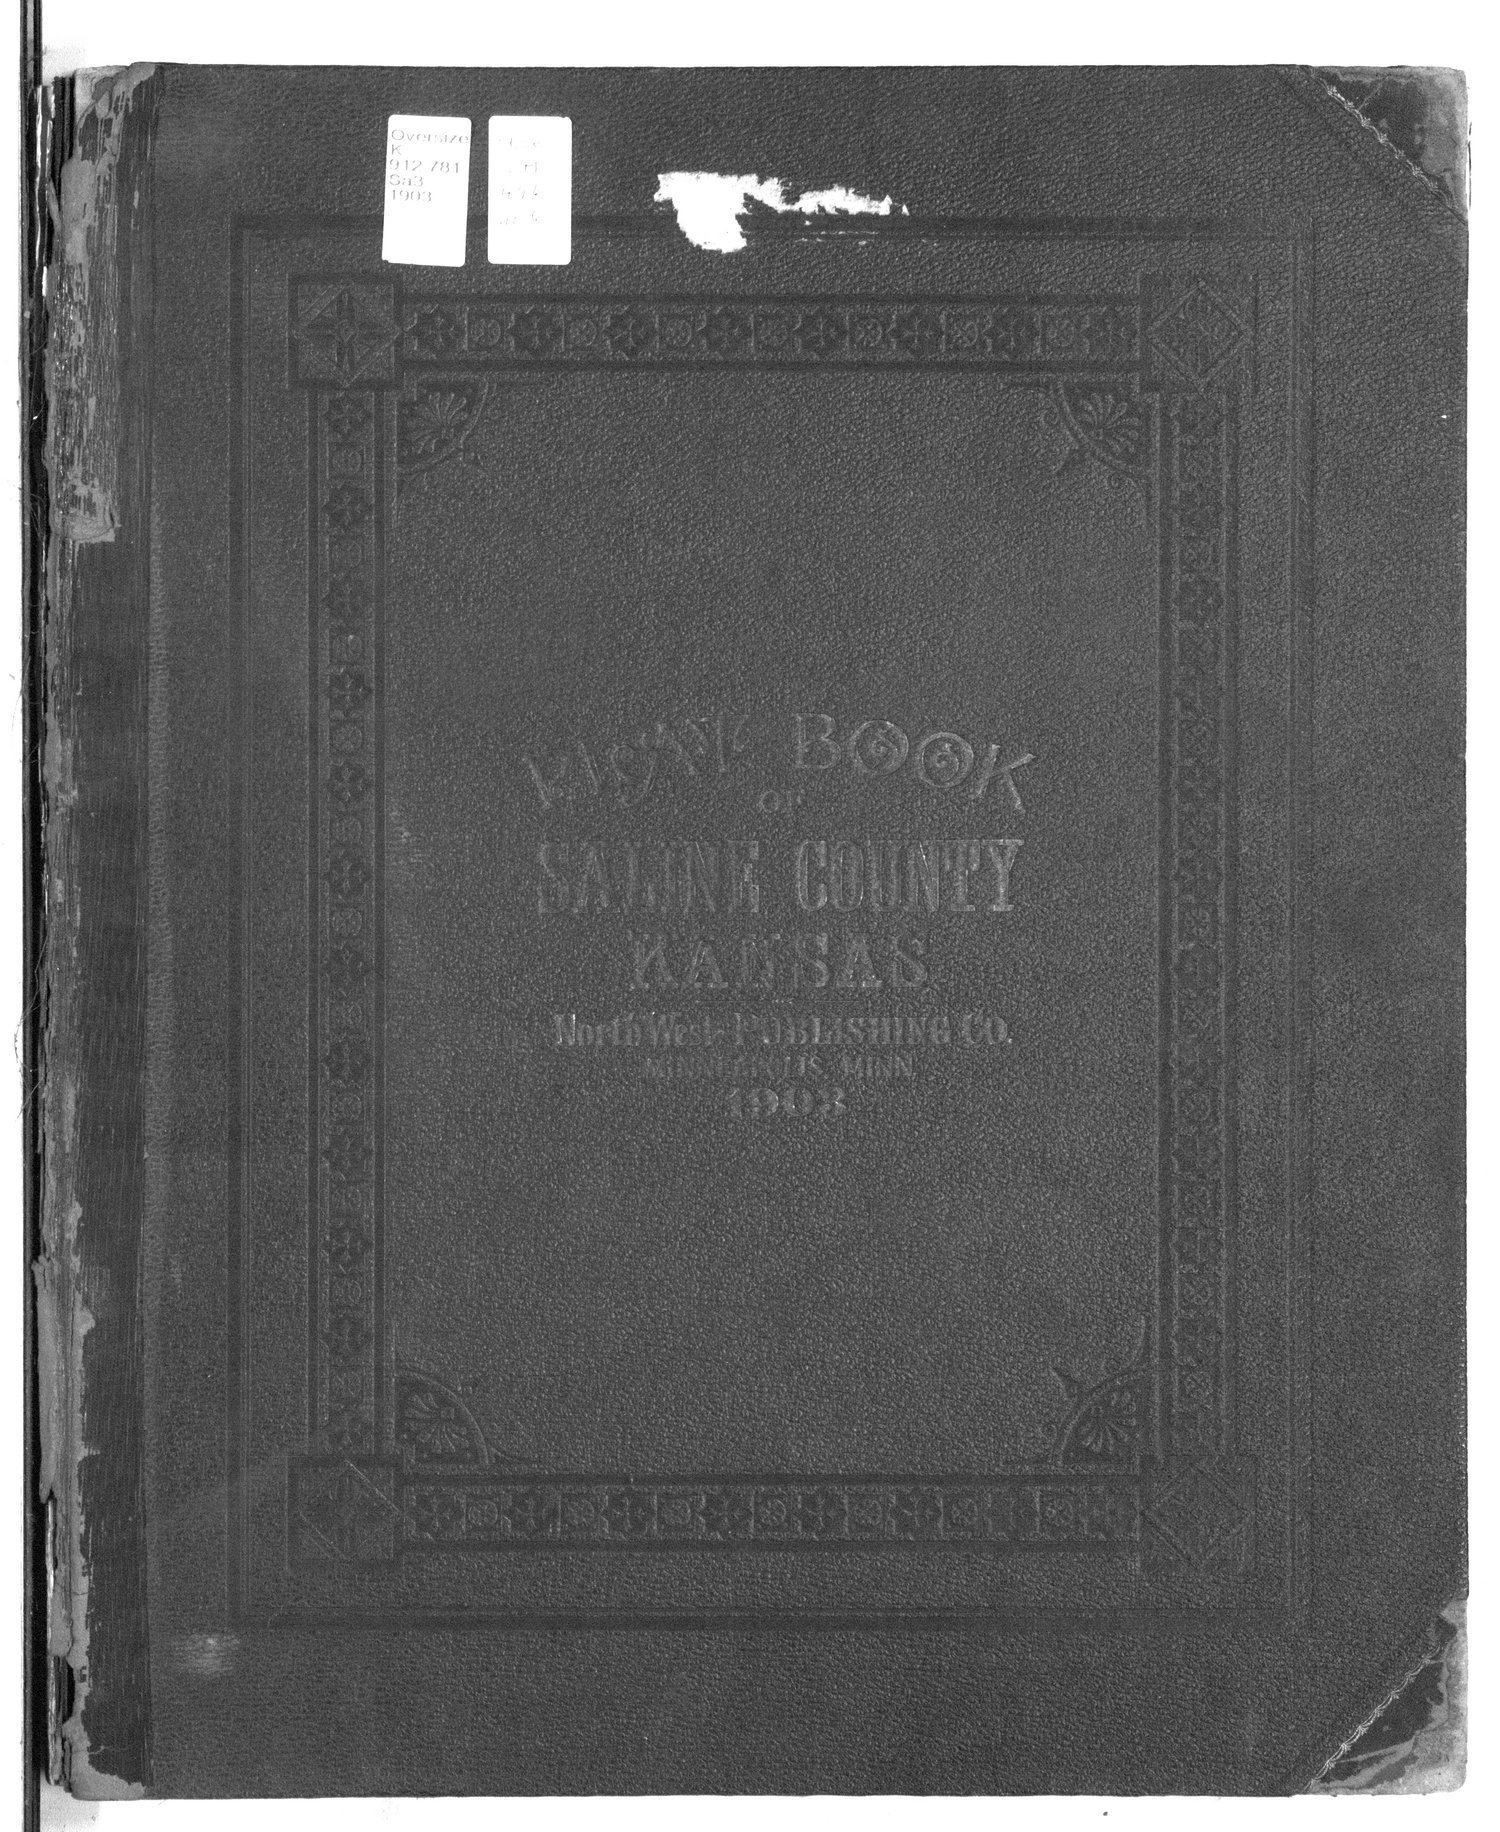 Plat book of Saline County, Kansas - Cover